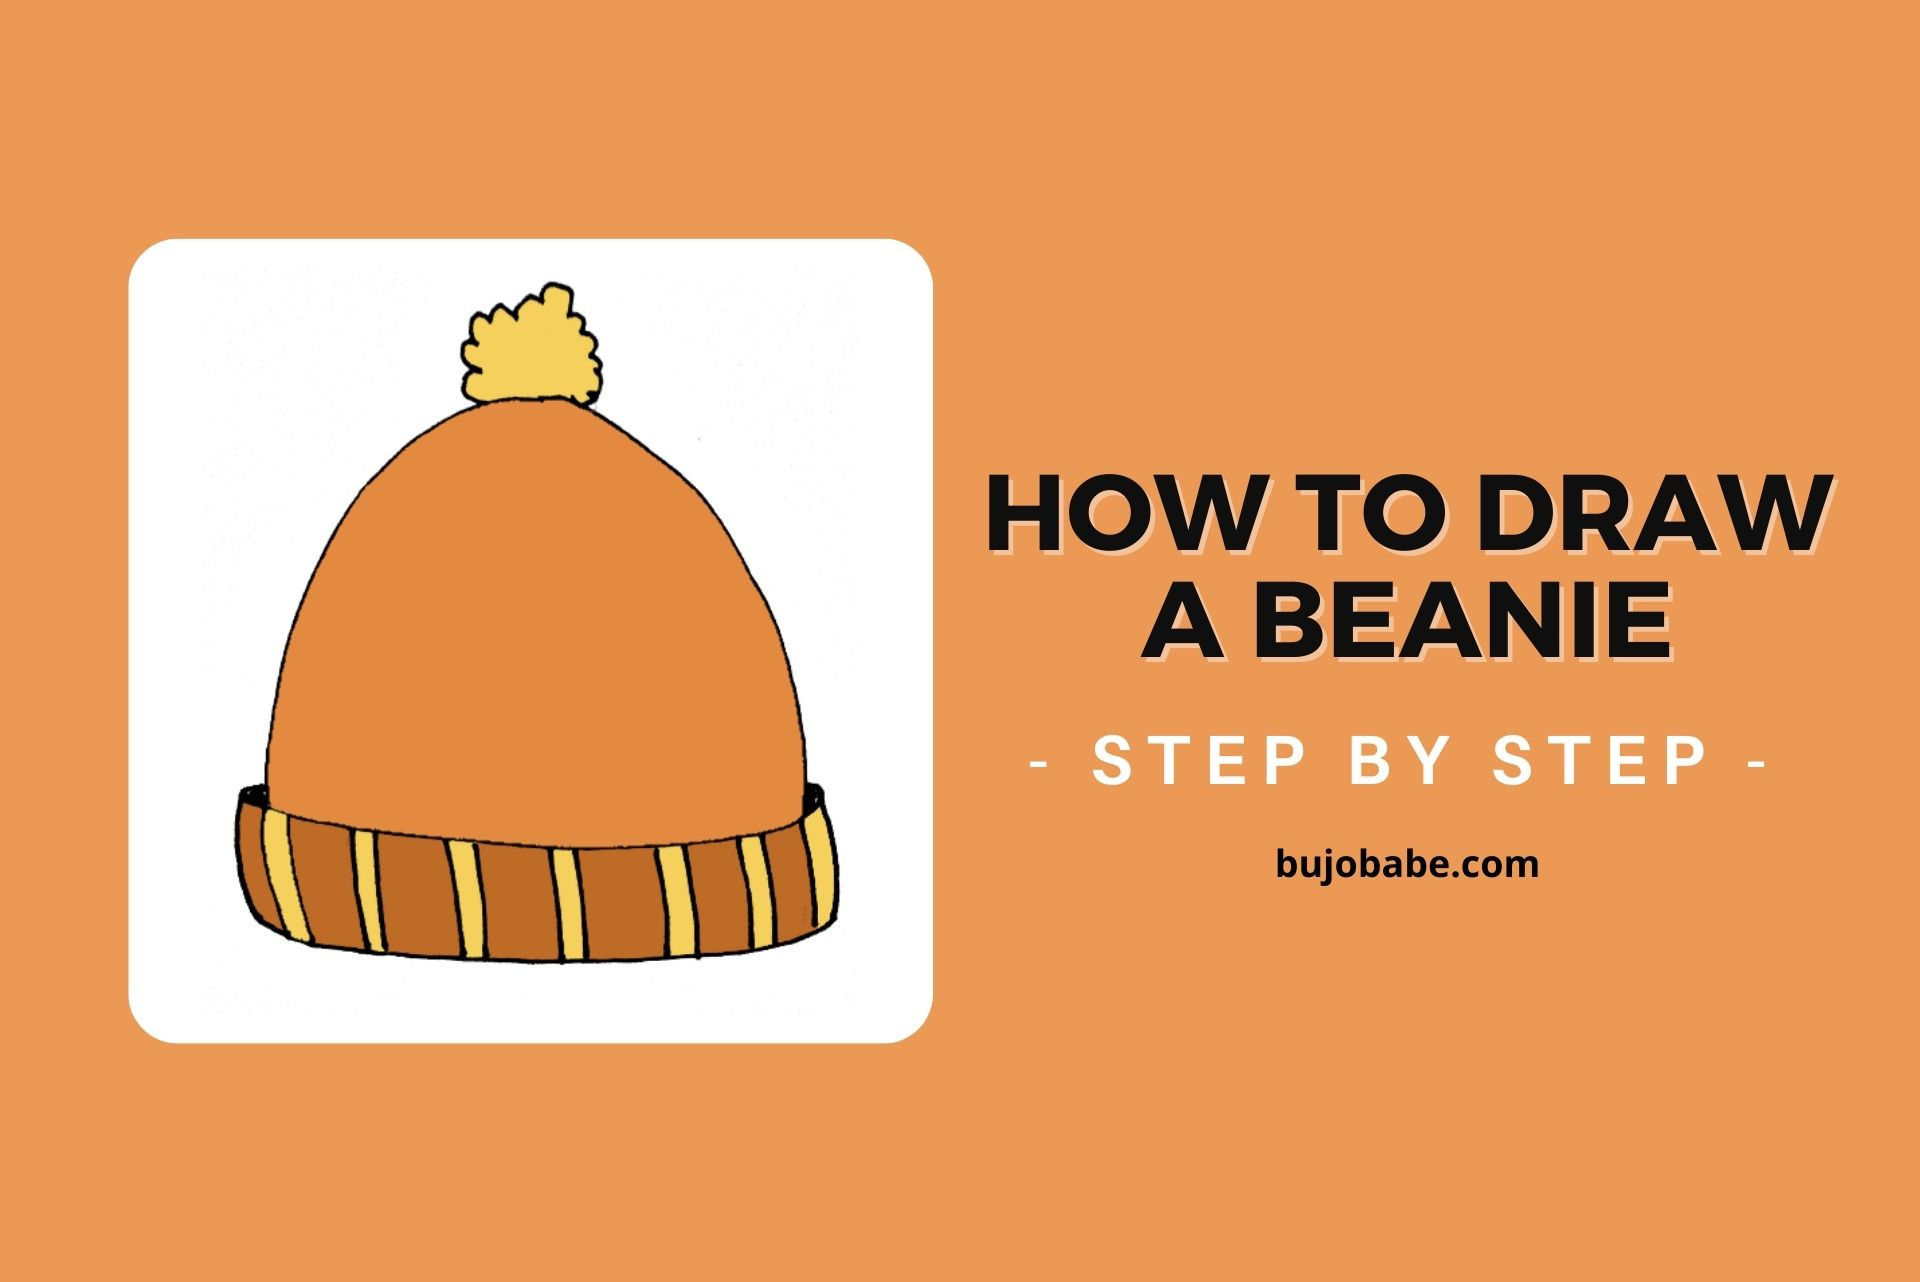 how to draw a beanie step by step